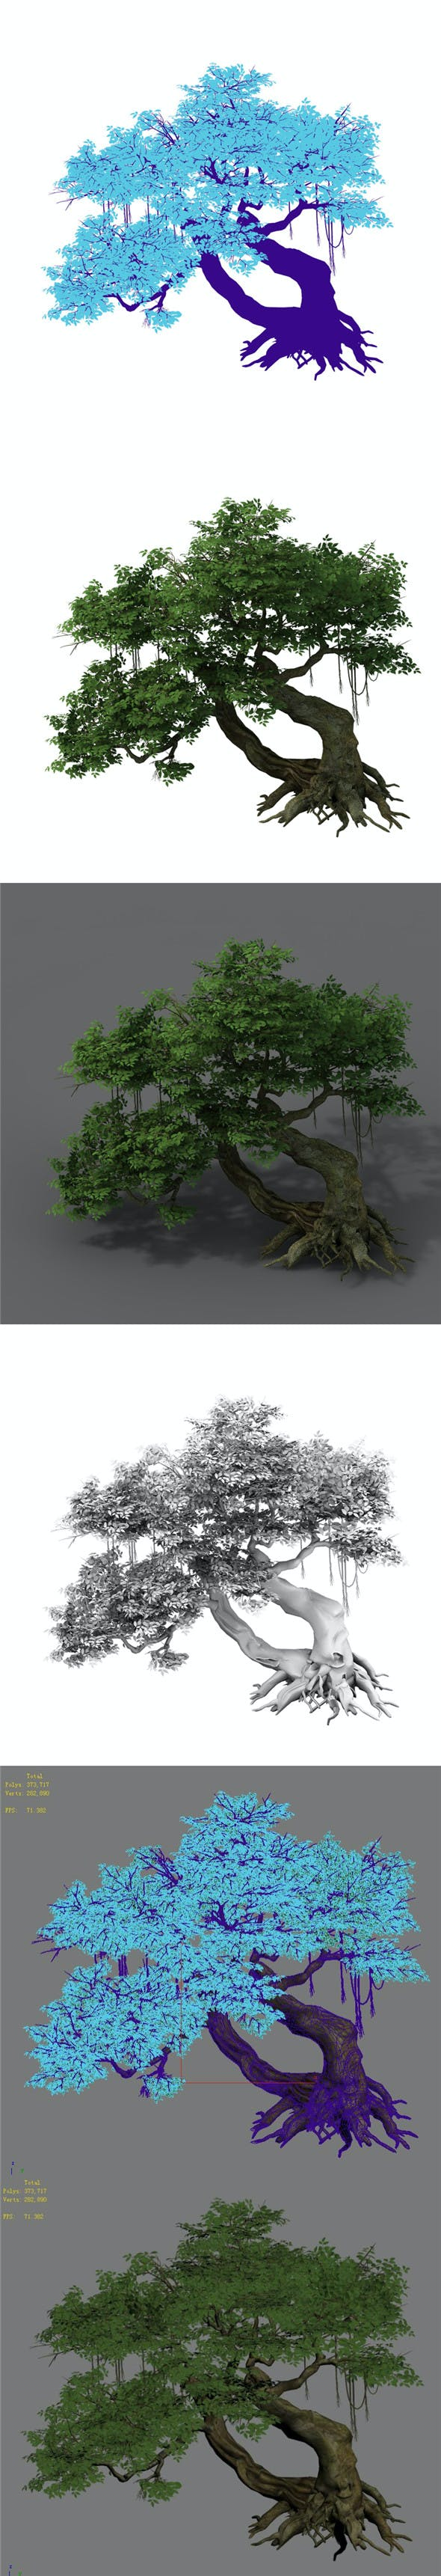 Plant - banyan tree 04 - 3DOcean Item for Sale